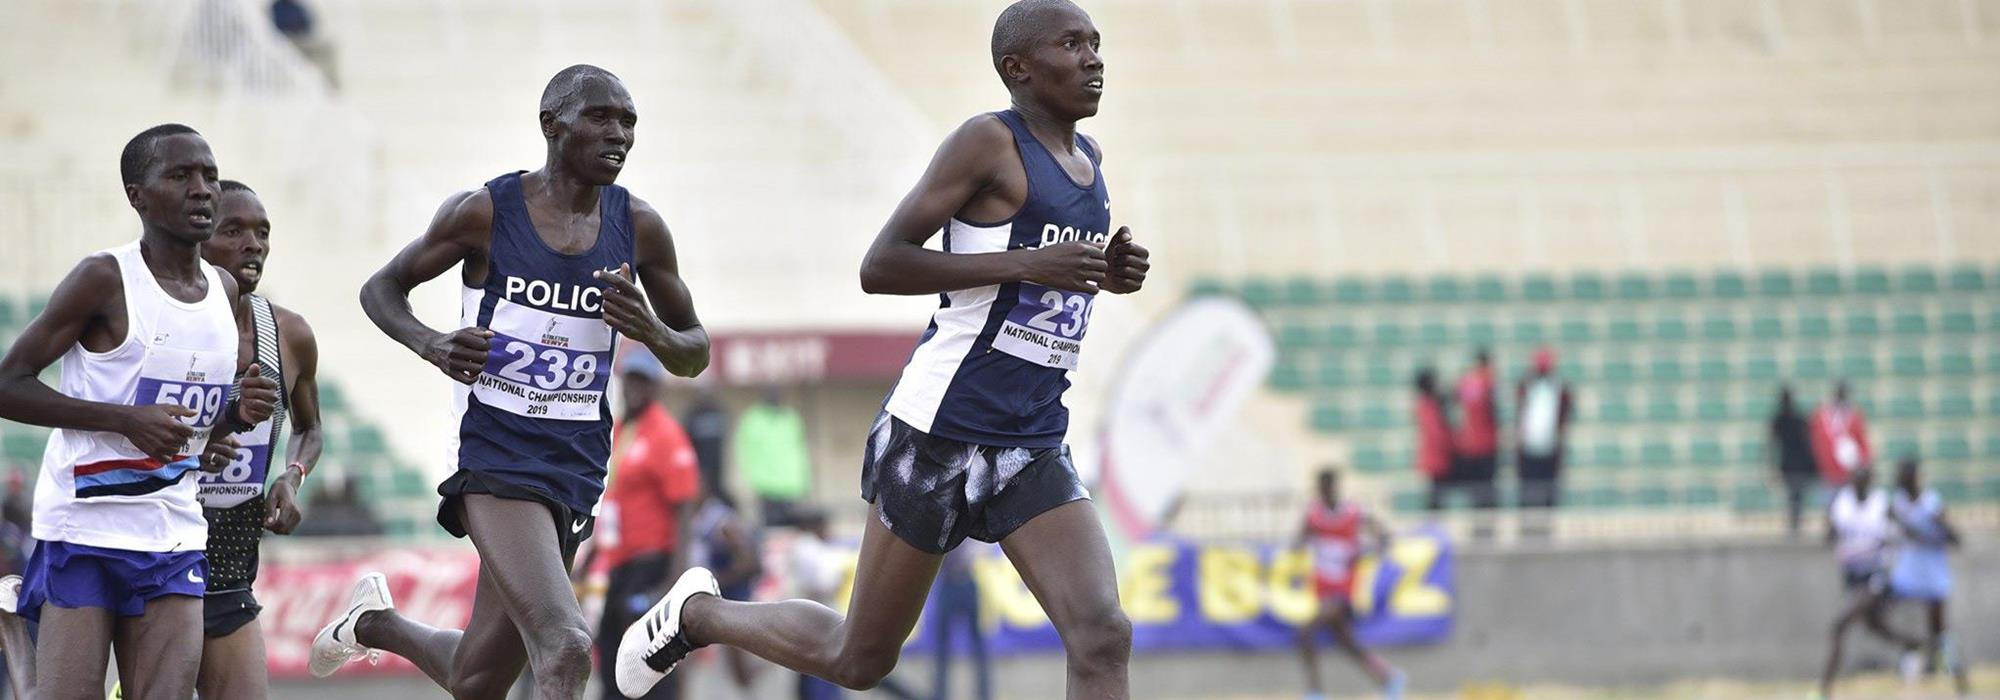 Eventual winner Geoffrey Kamworor (238) in the 10,000m at the Kenyan Championships in Nairobi (Athletics Kenya)